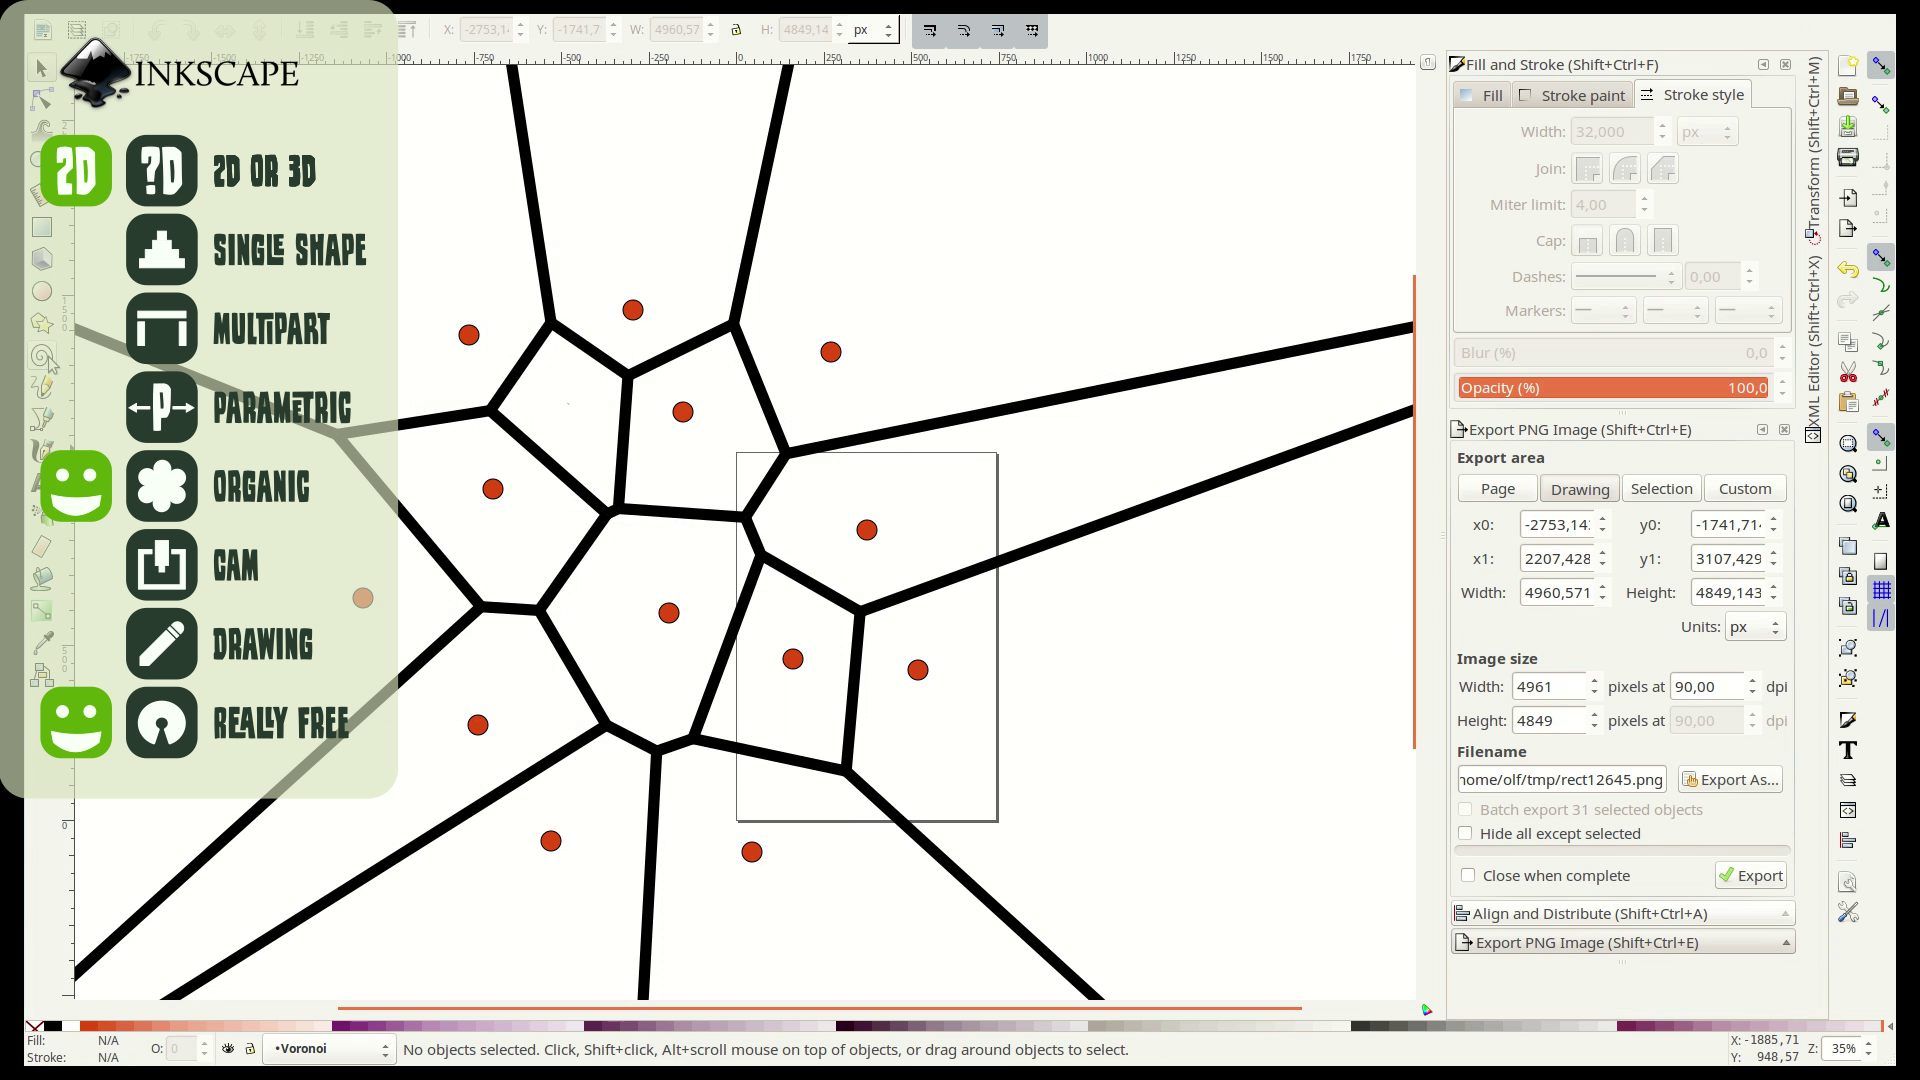 Free Cad Software For Makers Way Of Wood Inkscape39s New Voronoi Diagram Generator The Circles Are Created Besides Templates Inkscape Can Also Produce Shapes A Lasercutter Or Cnc Machine And It Even Includes Simple Cam Solution That Create Gcode